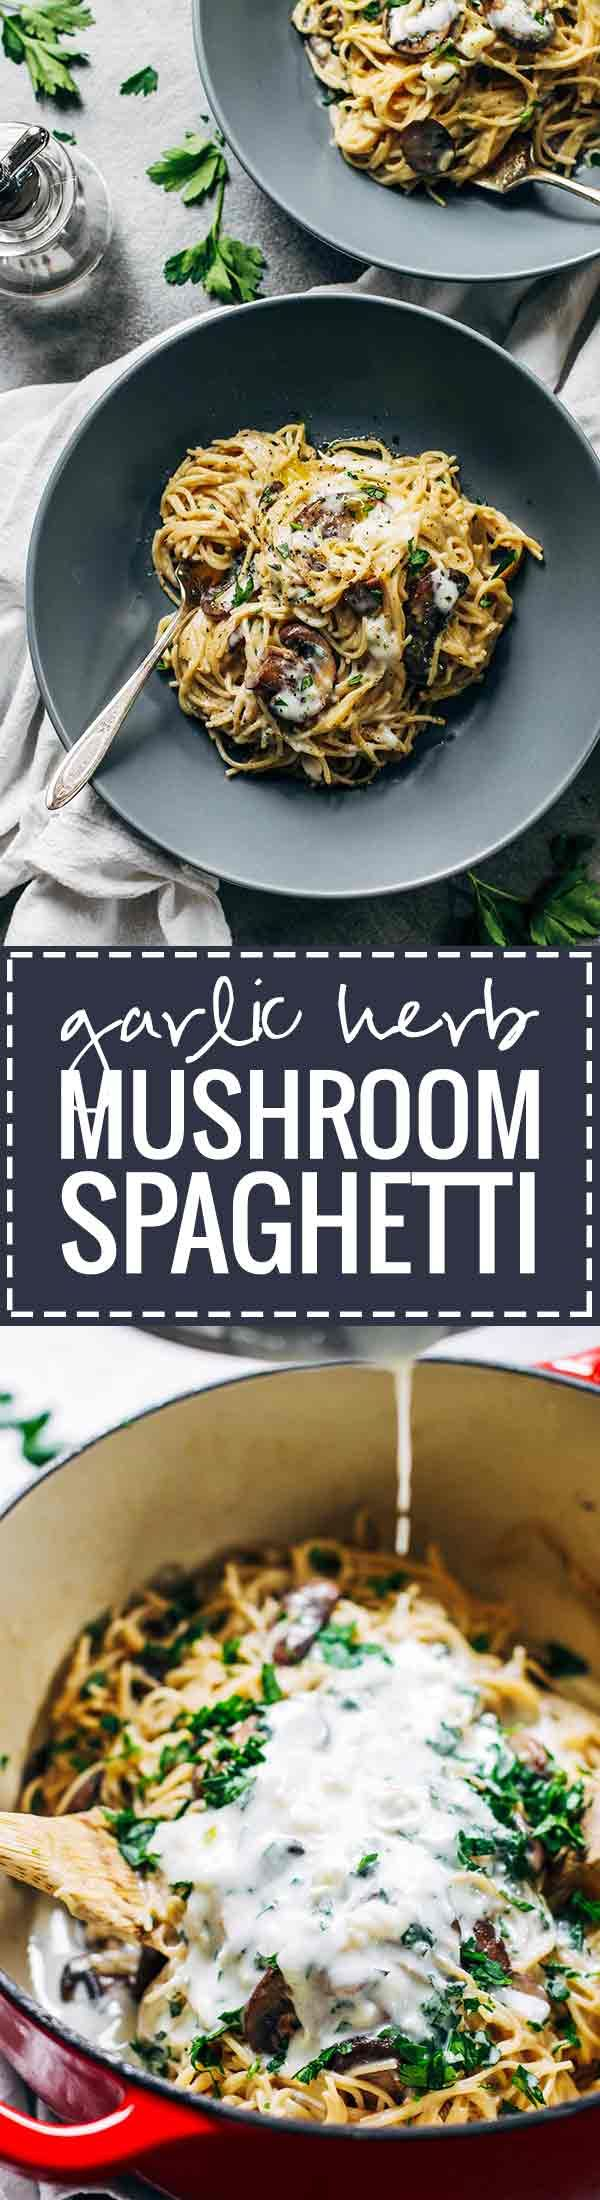 Creamy Garlic Herb Mushroom Spaghetti   this recipe is total comfort food  Simple ingredients  ready in about 30 minutes  vegetarian